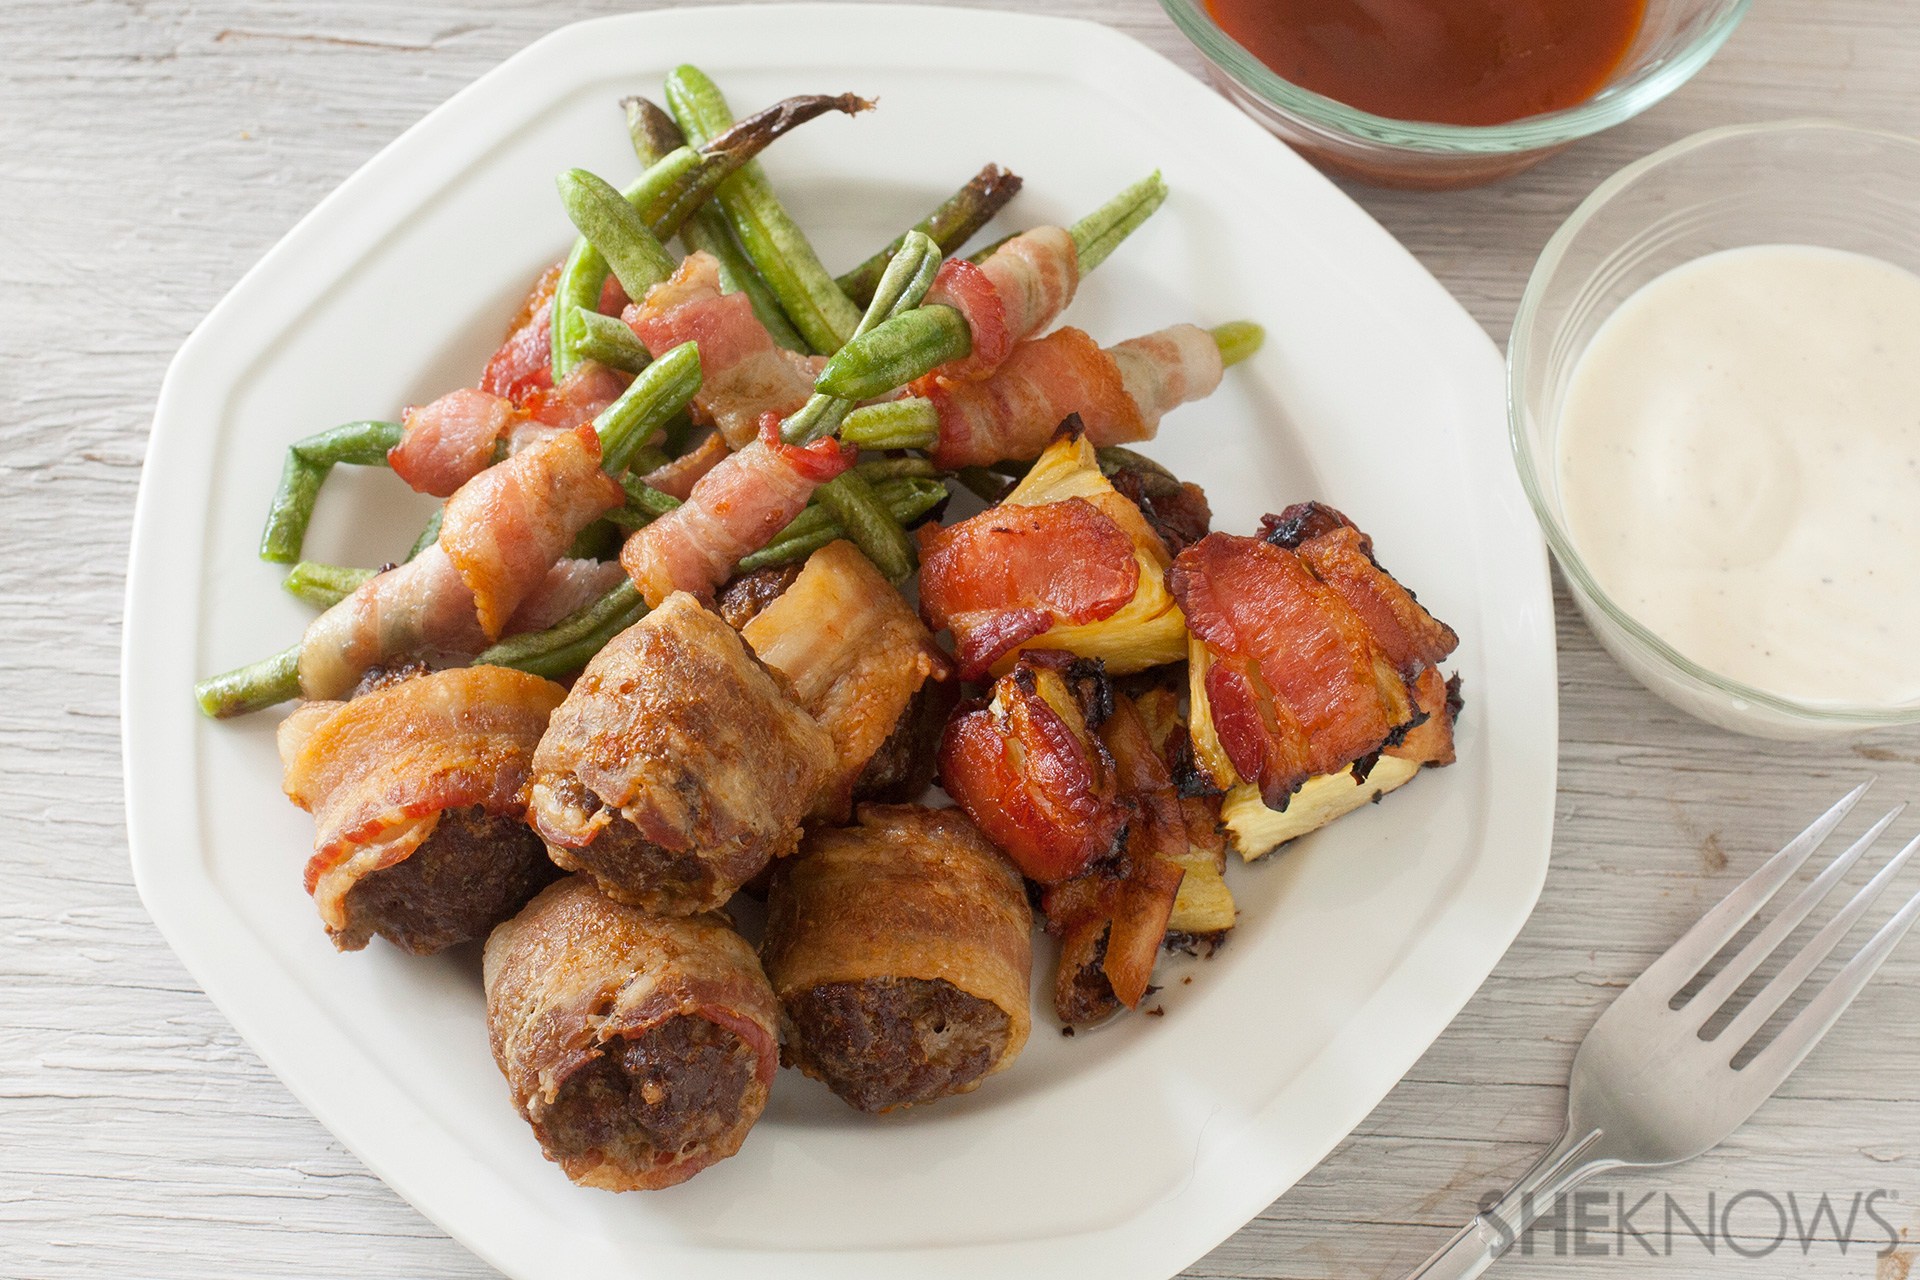 Bacon wrapped dinner